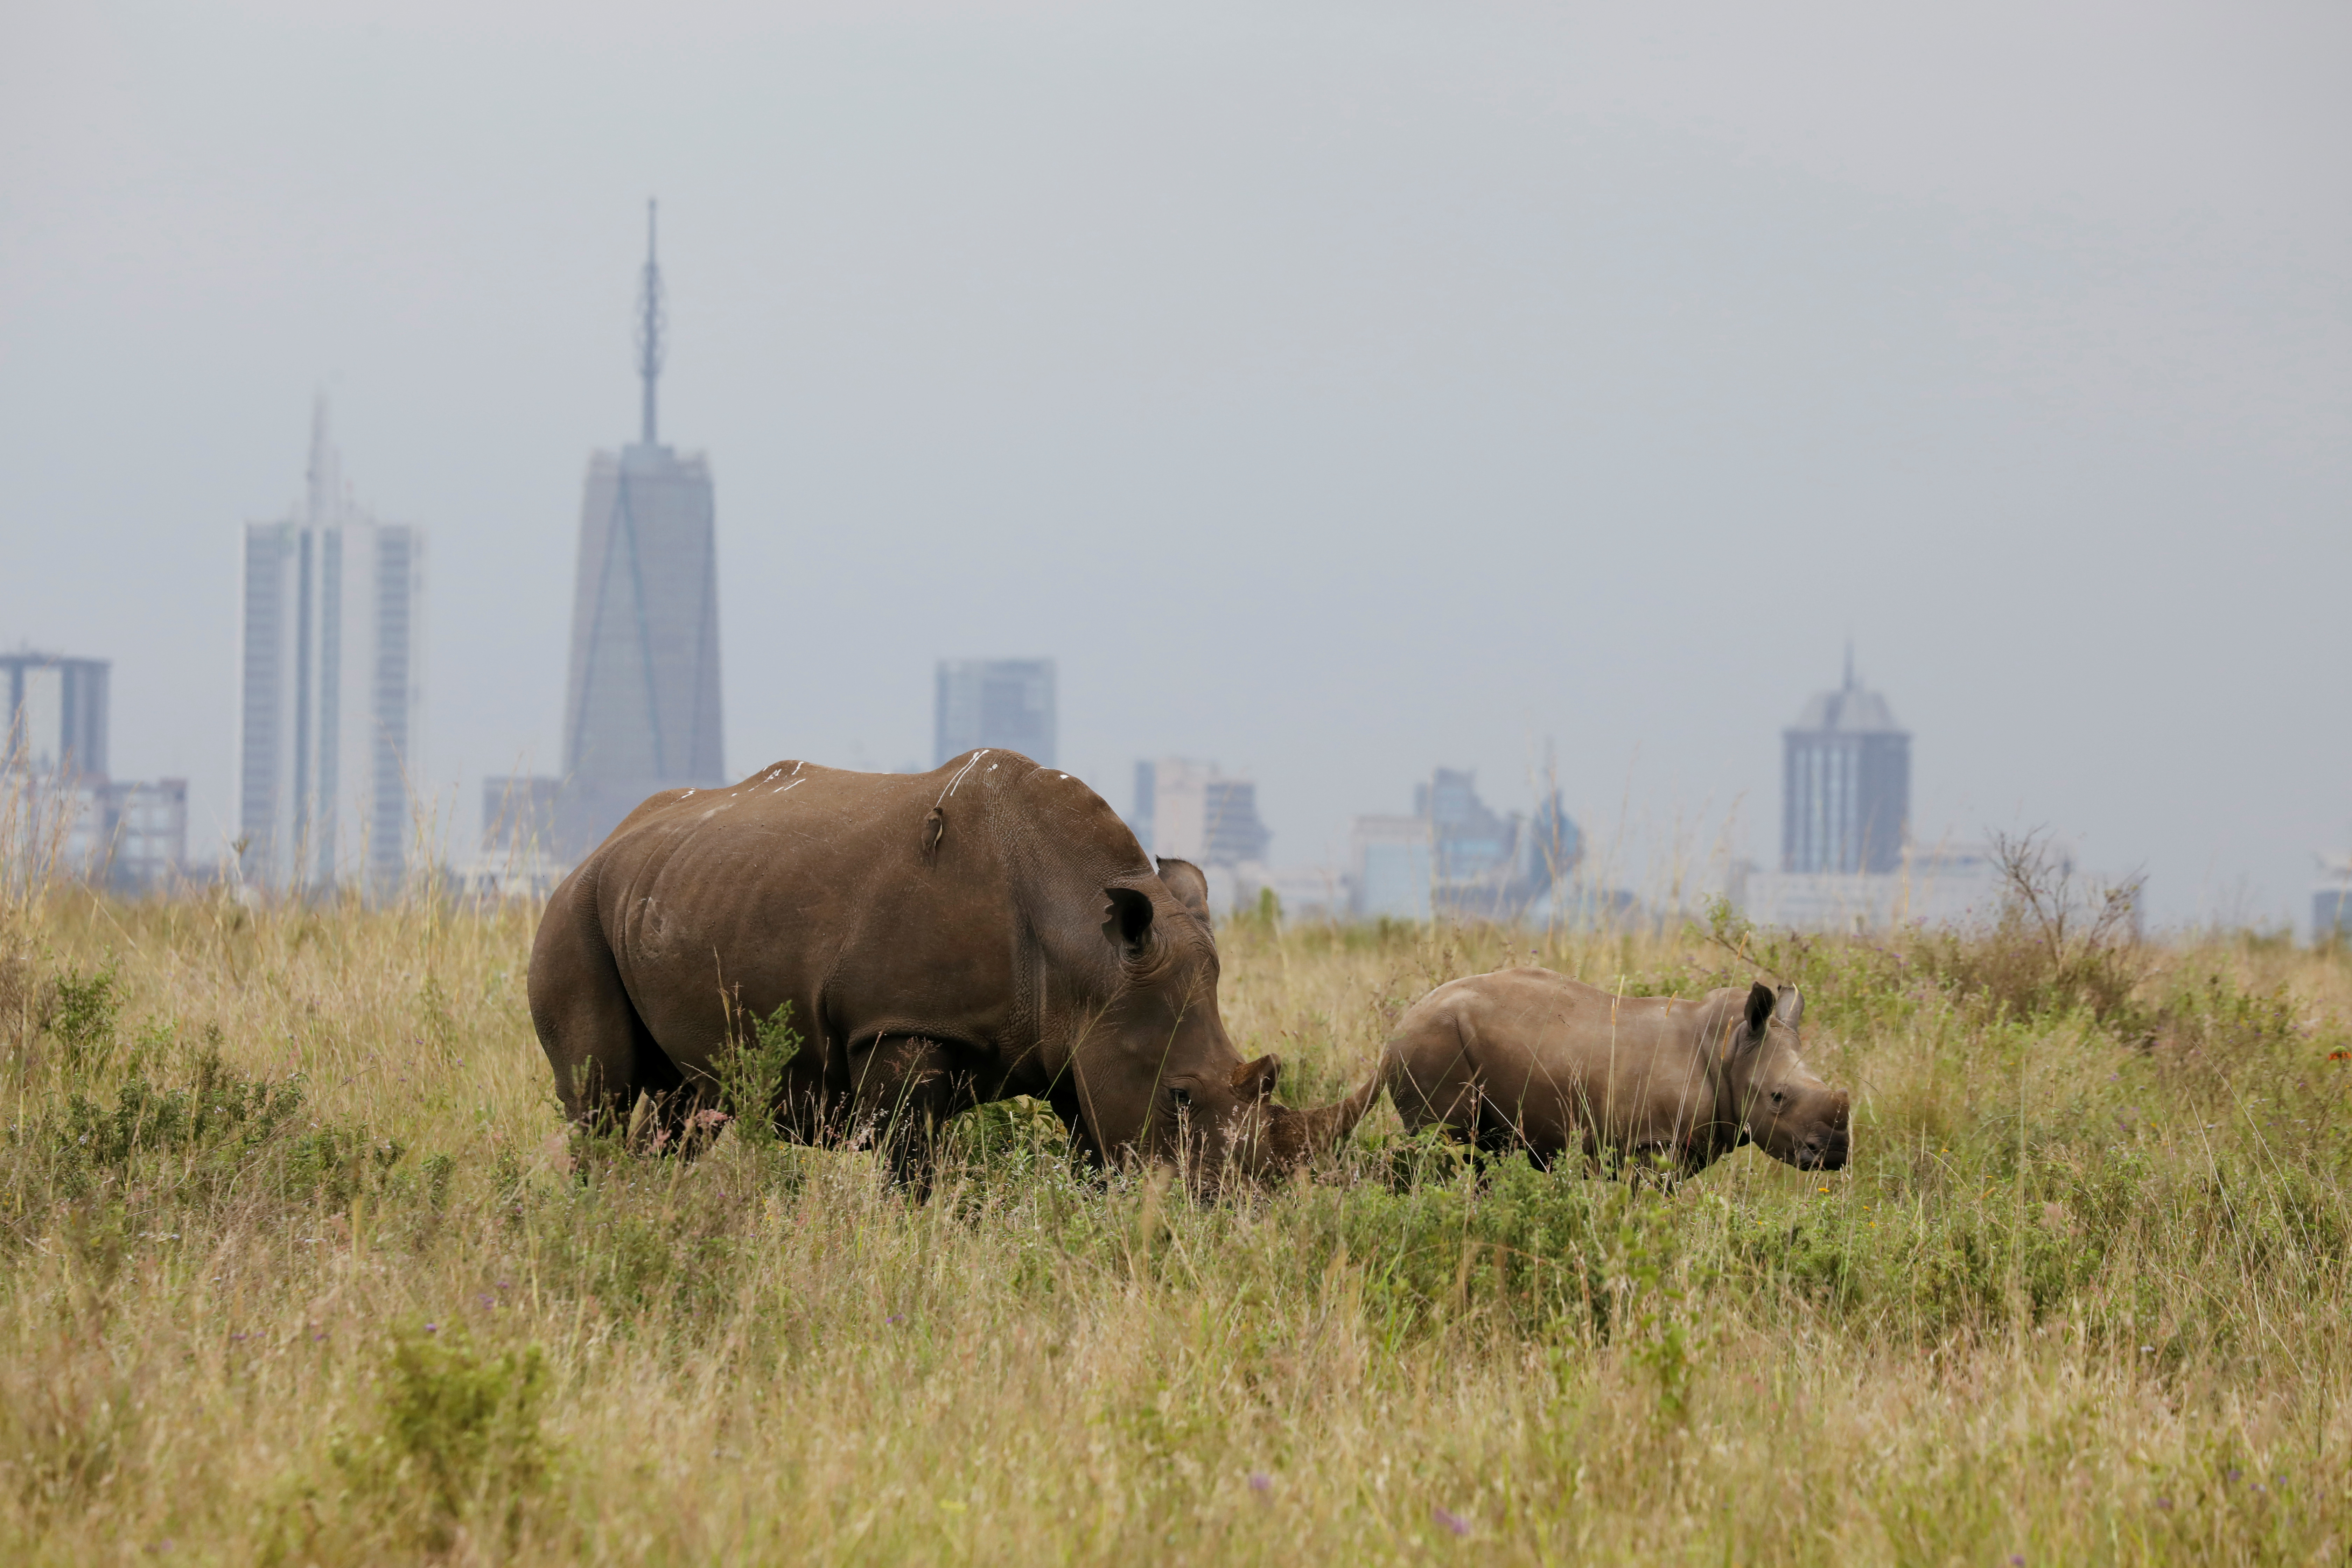 A southern white rhino and her calf are seen inside the Nairobi National Park with the Nairobi skyline in the background, in Nairobi, Kenya June 15, 2020. Picture taken June 15, 2020. REUTERS/Baz Ratner